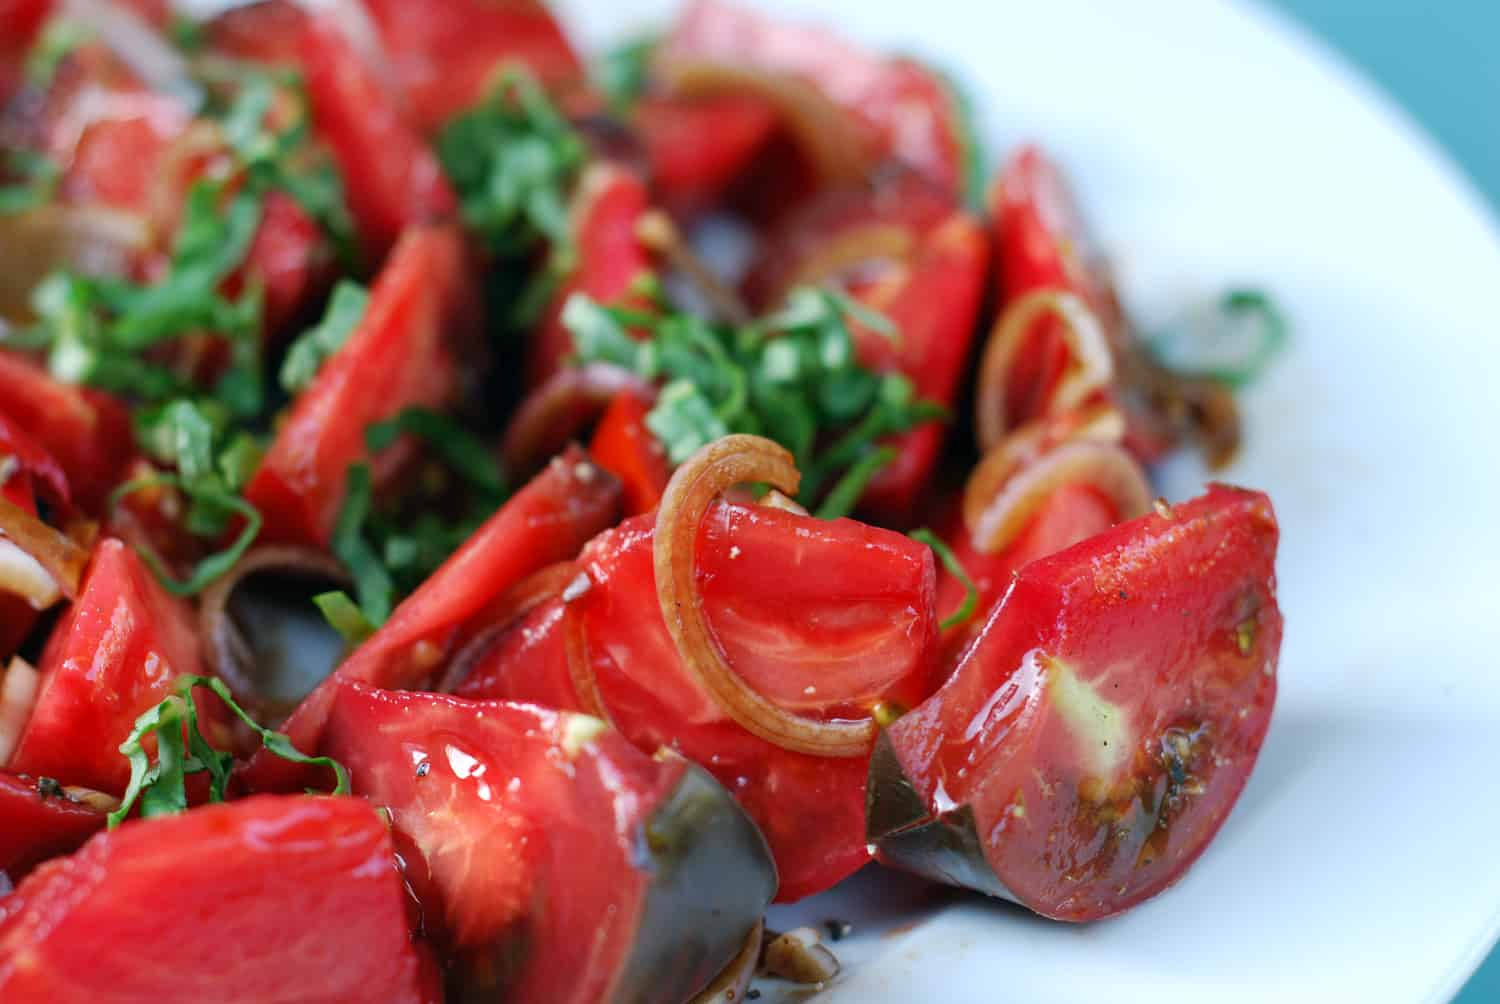 A platter of Tomato and Basil salad on a white plate.